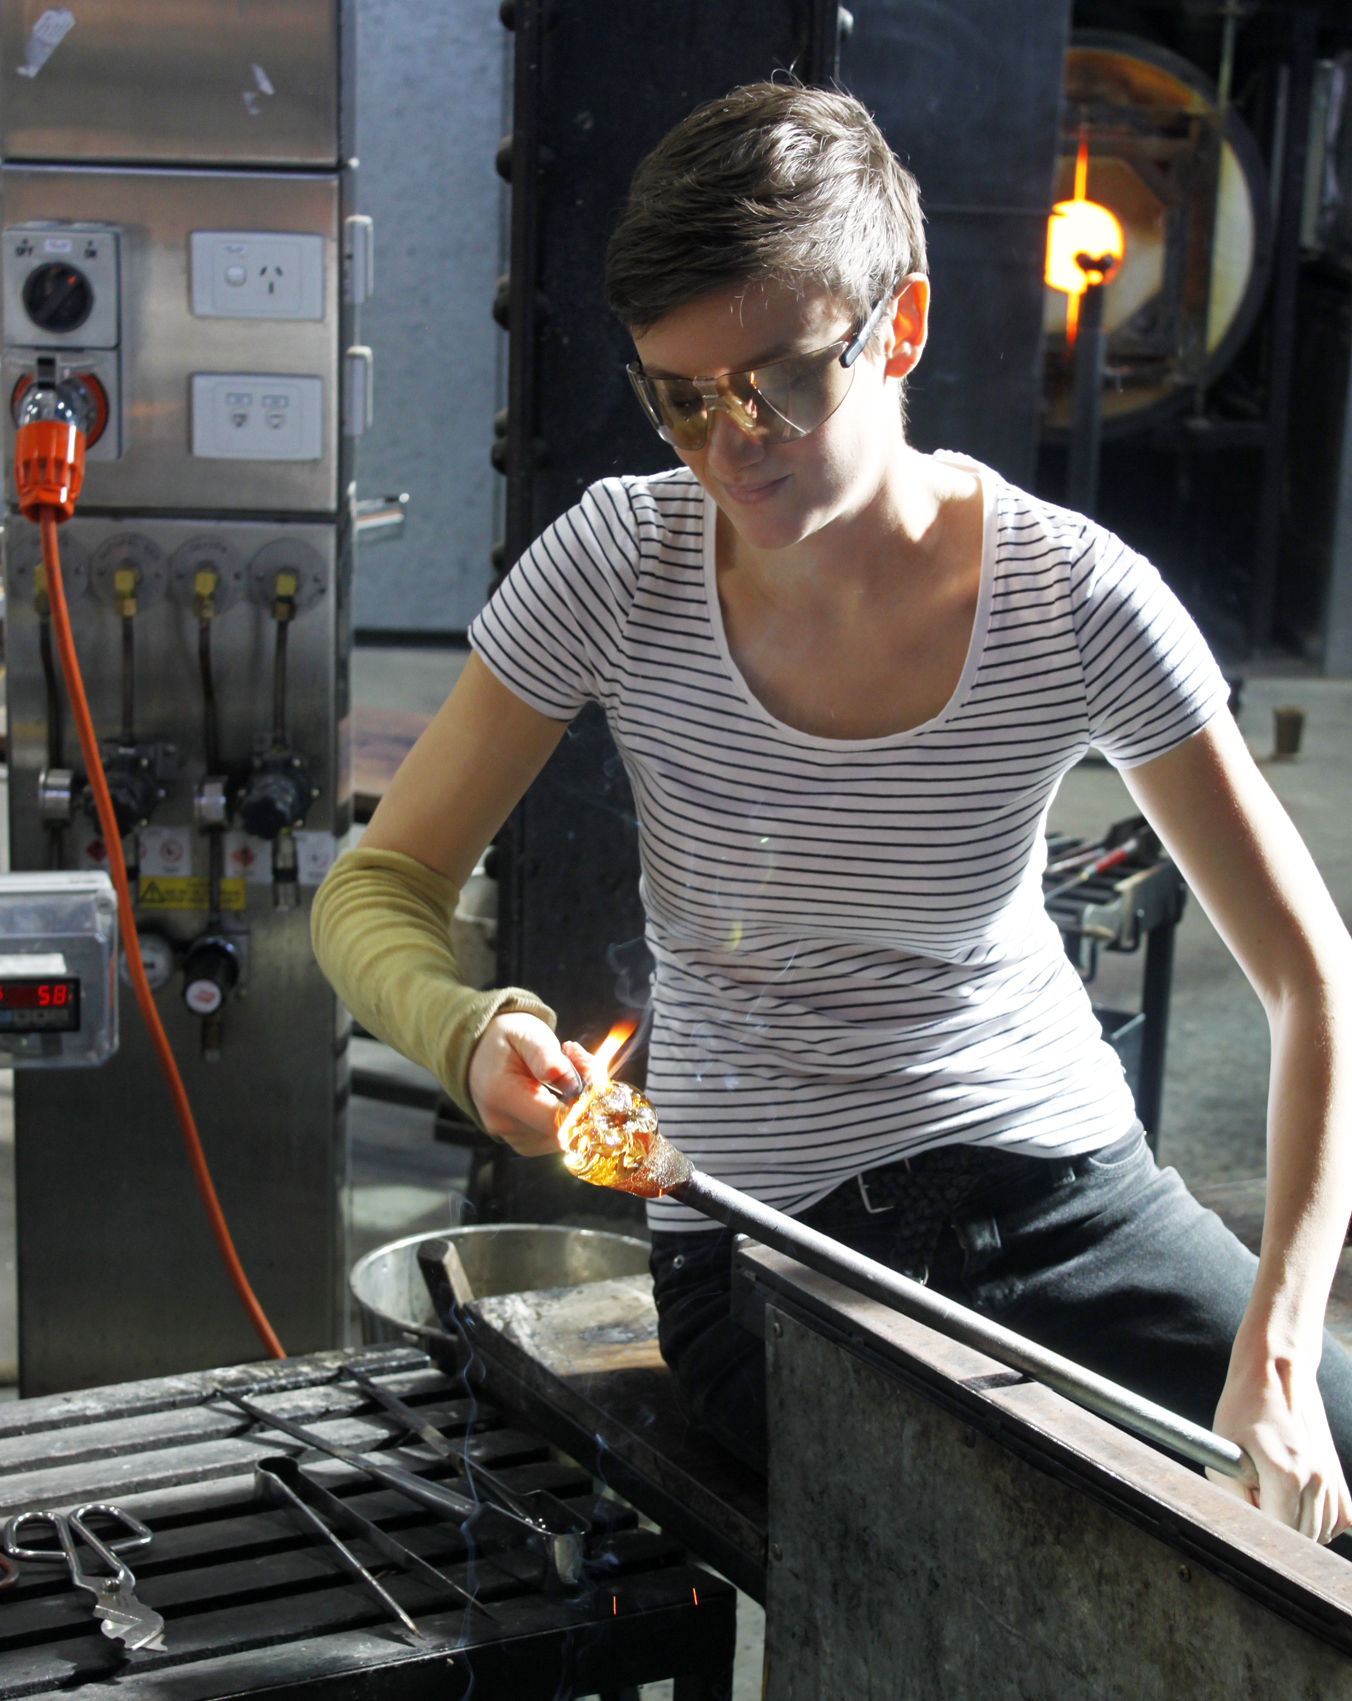 The dried wattle is being inserted and encased in the molten glass.